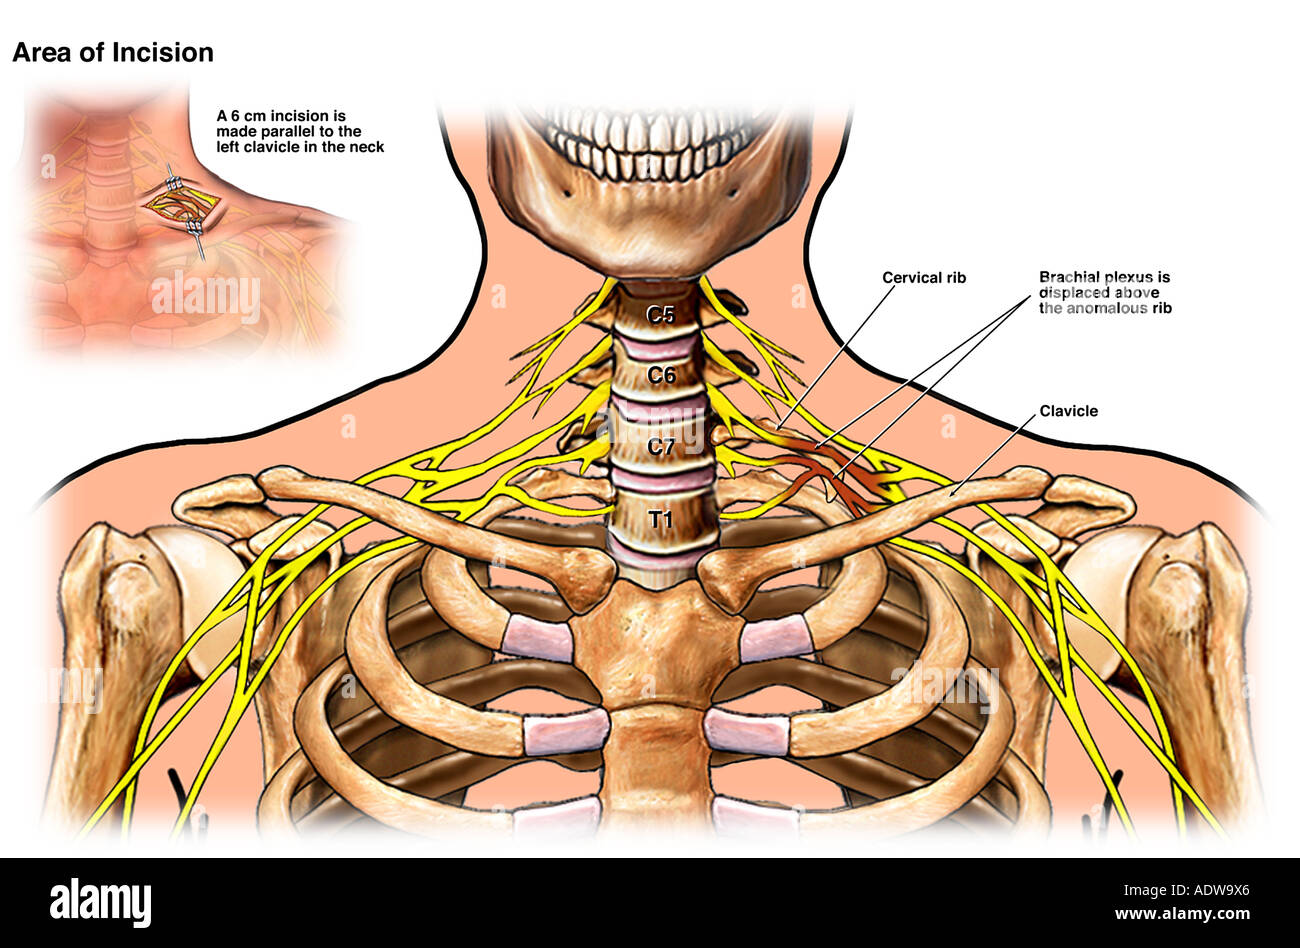 Brachial Plexus Injury Stock Photos & Brachial Plexus Injury Stock ...